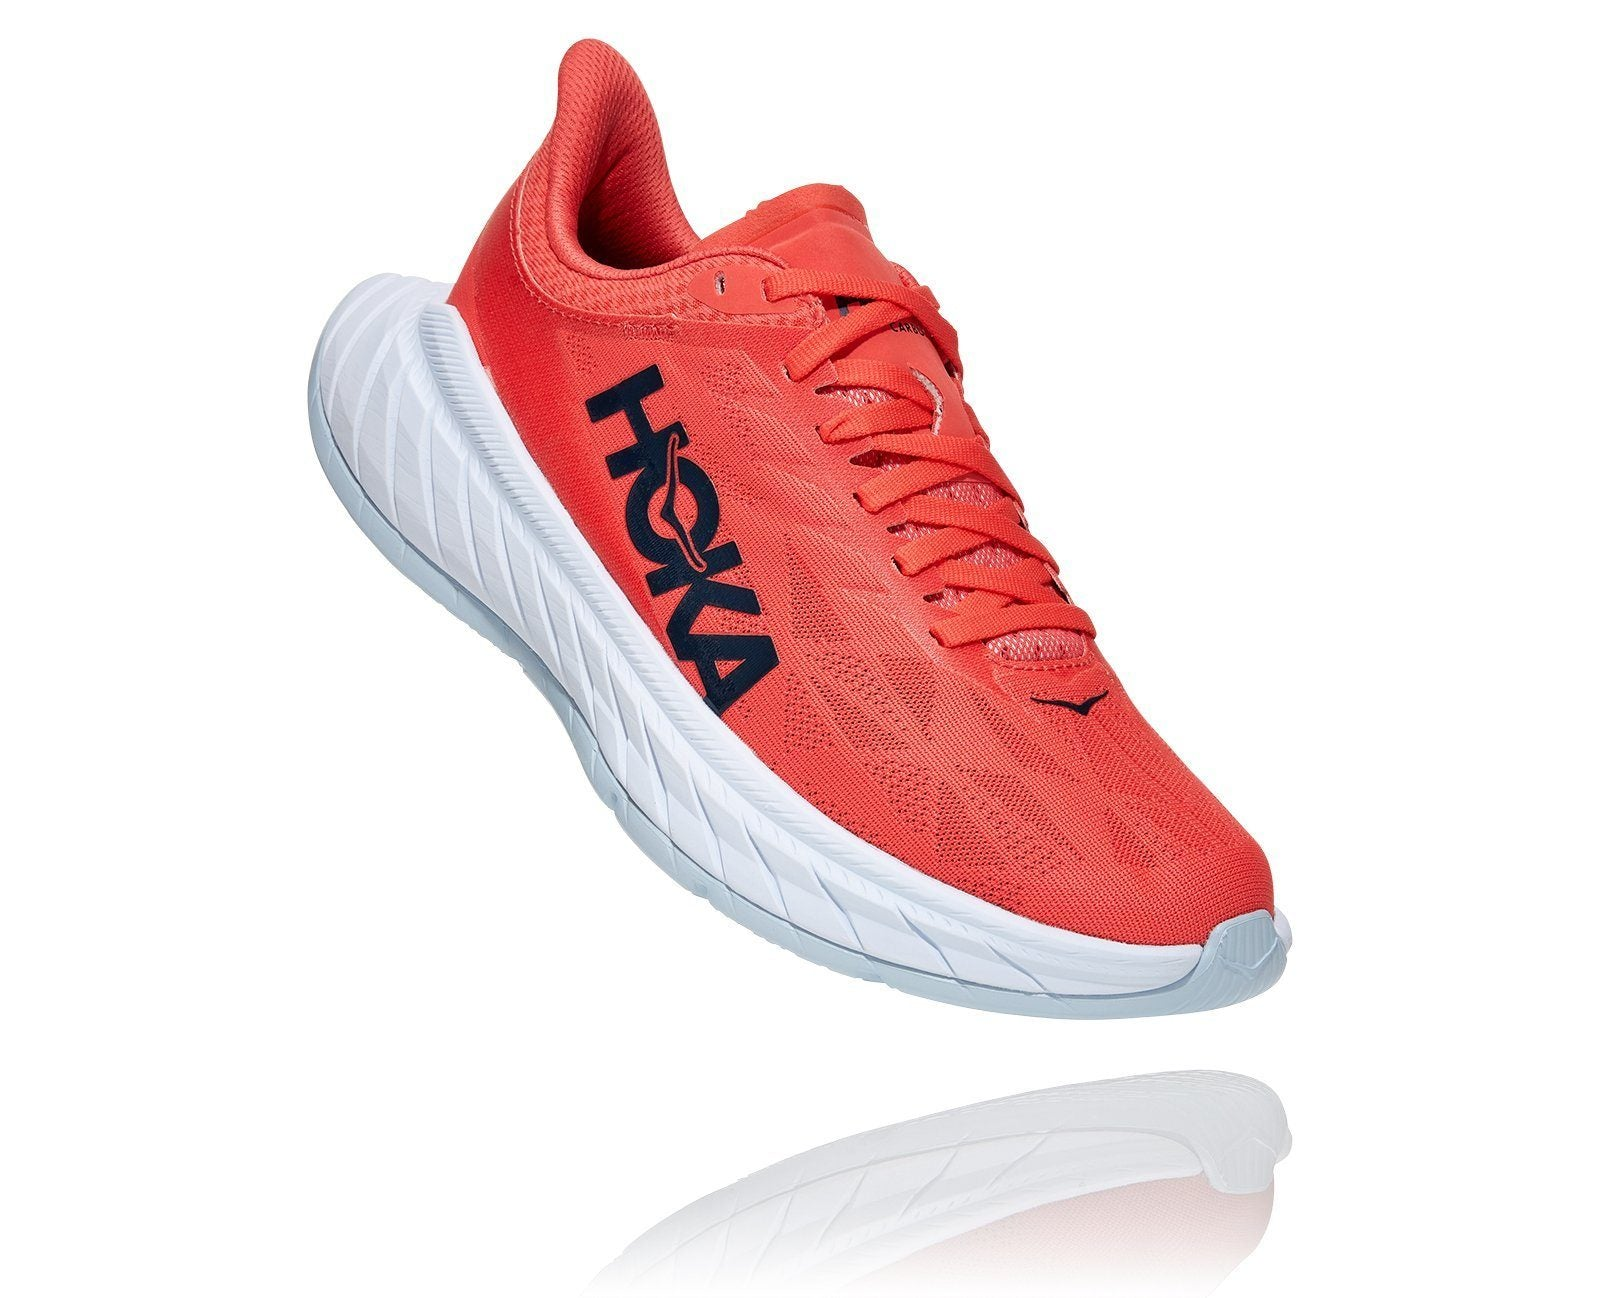 Hoka One One Men's Carbon X 2 - BlackToe Running Inc. - Toronto Running Specialty Store